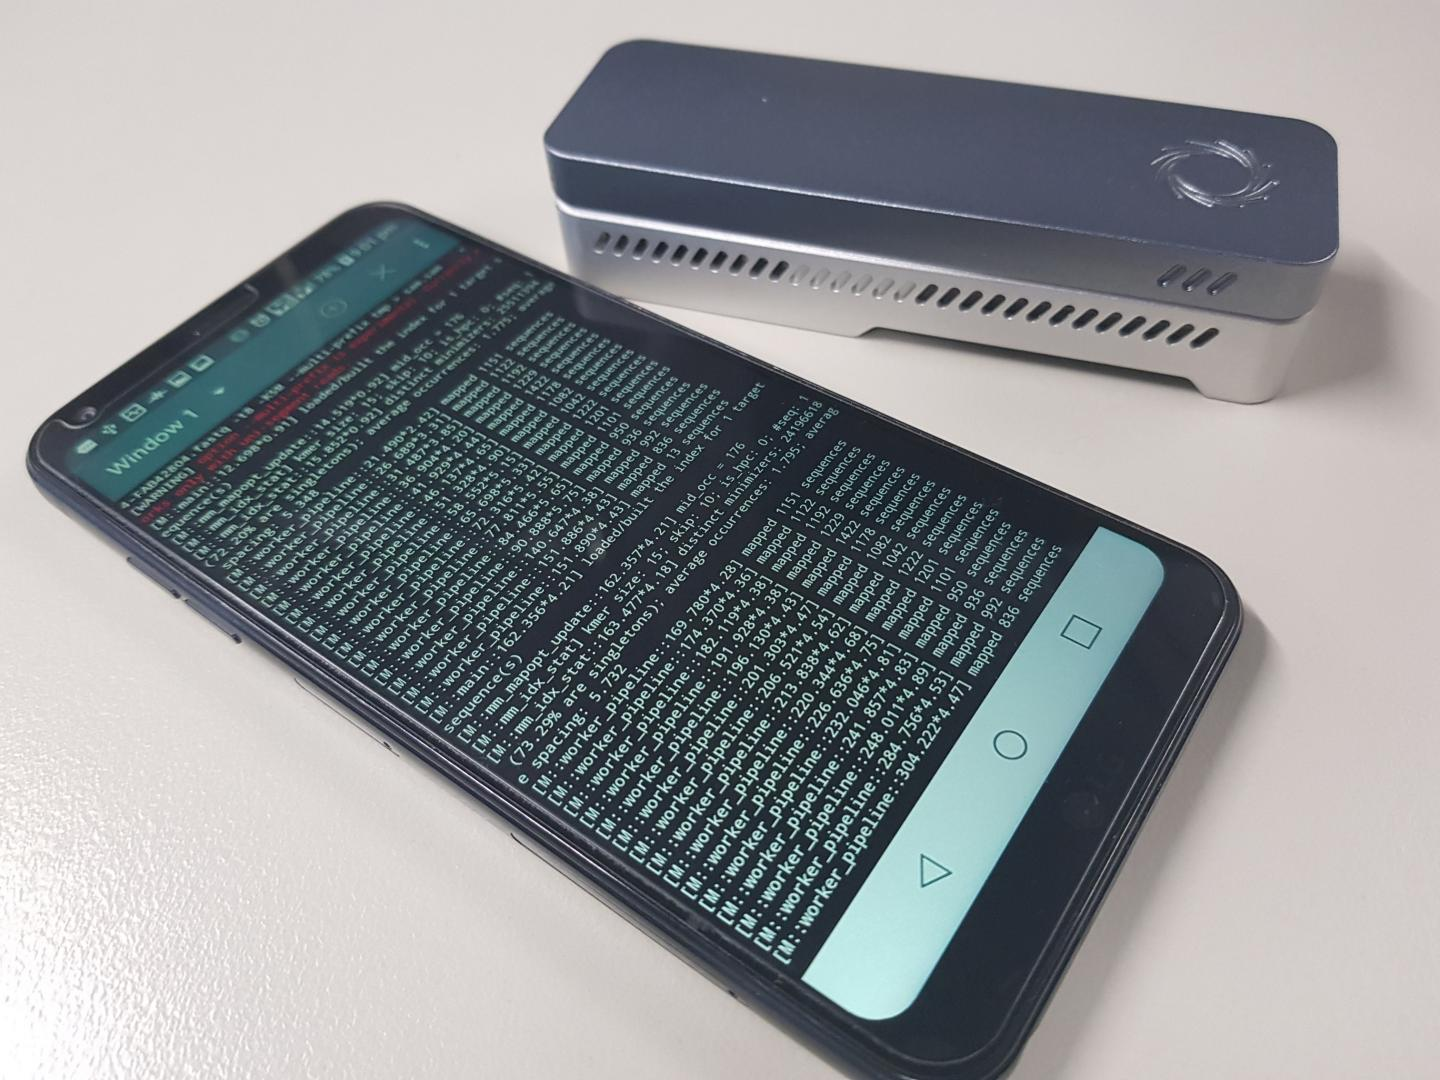 Garvan researchers have made it possible to do genomic analysis on a smartphone. The new technology can analyze data obtained through commercially available sequencers, such as the Oxford Nanopore Technologies MinION sequencer (pictured). / Credit: Hasindu Gamaarachchi